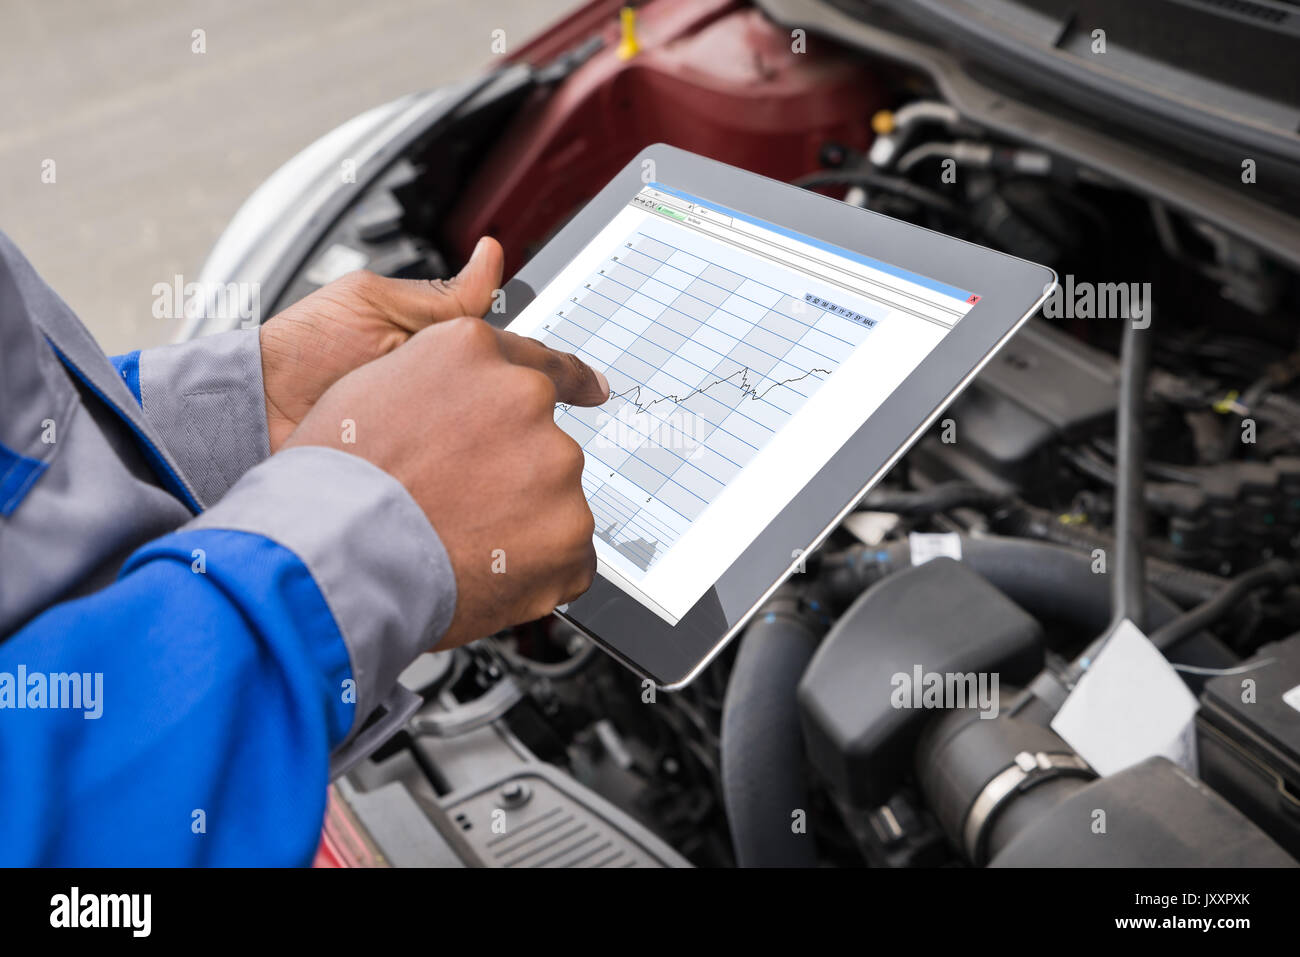 Close-up Of Mechanic With Digital Tablet Showing Graph While Examining Car - Stock Image